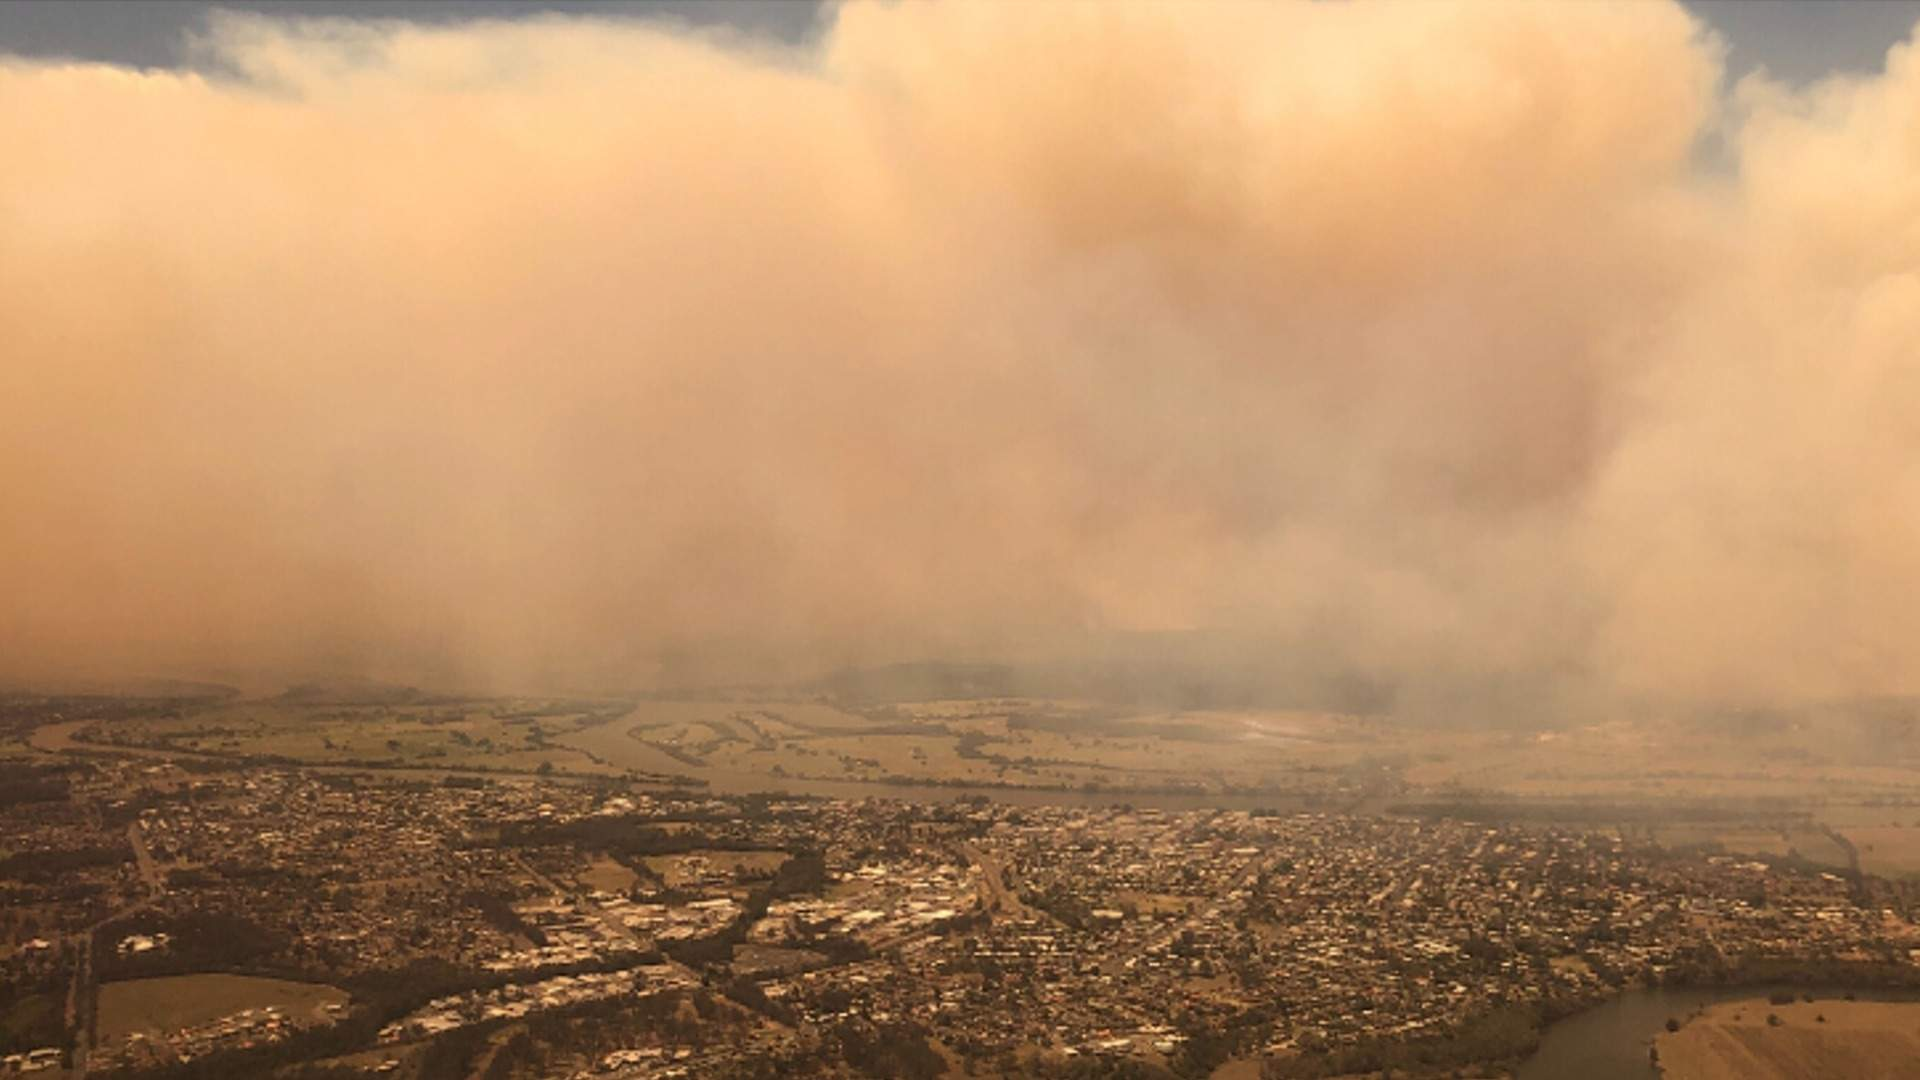 A Haze Of Bushfire Smoke Is Currently Affecting The Air